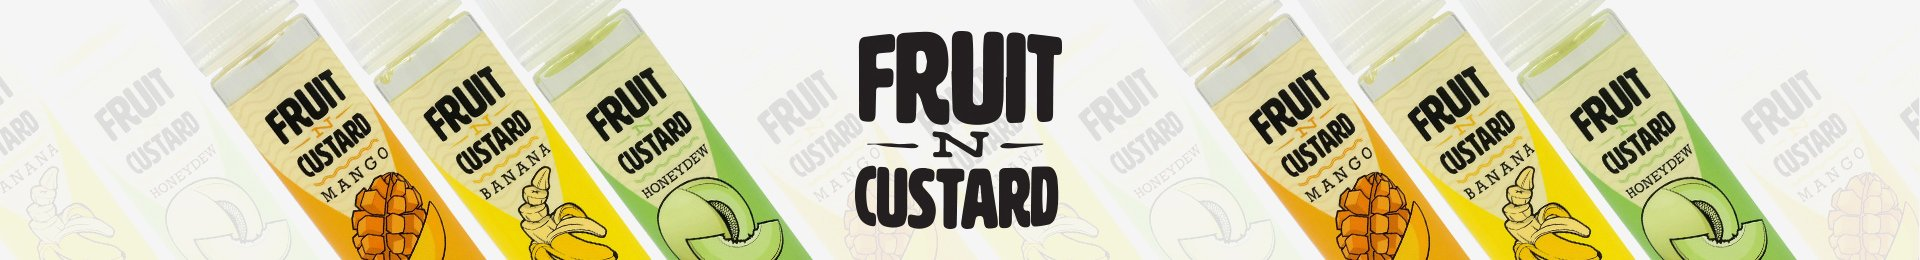 fruit-n-custard_banner